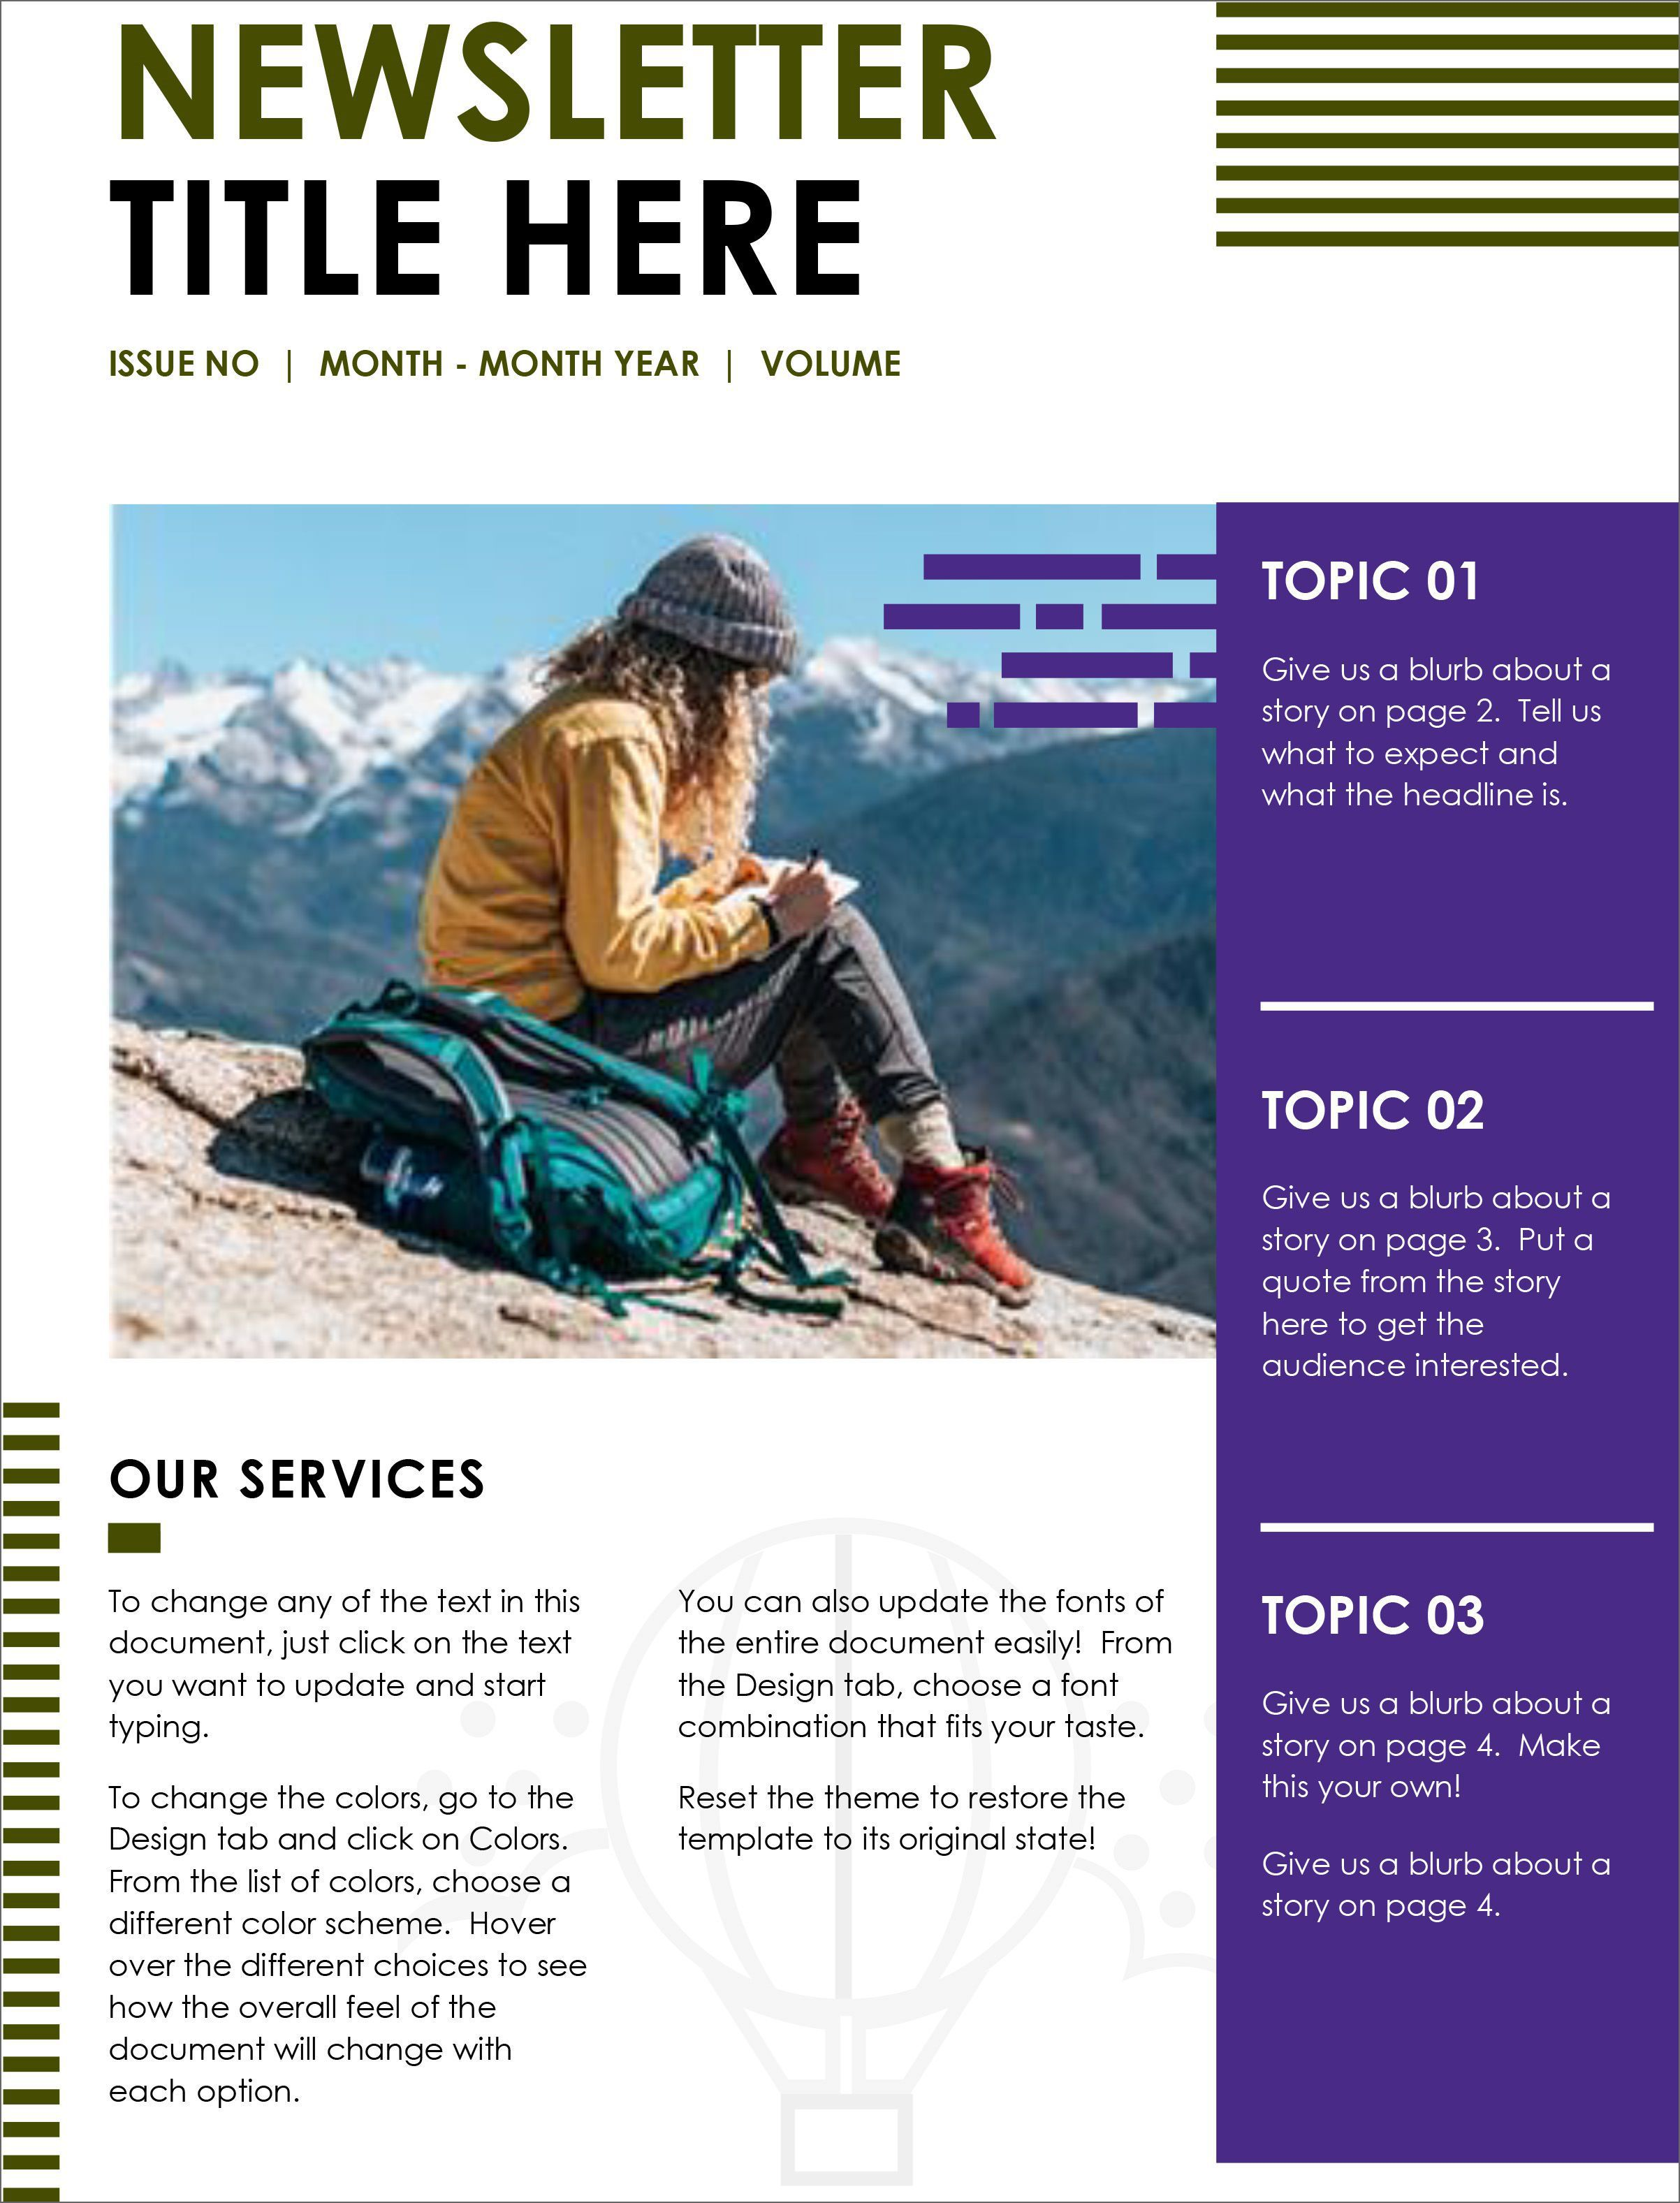 007 Staggering Free Newsletter Template For Word 2010 Idea Full